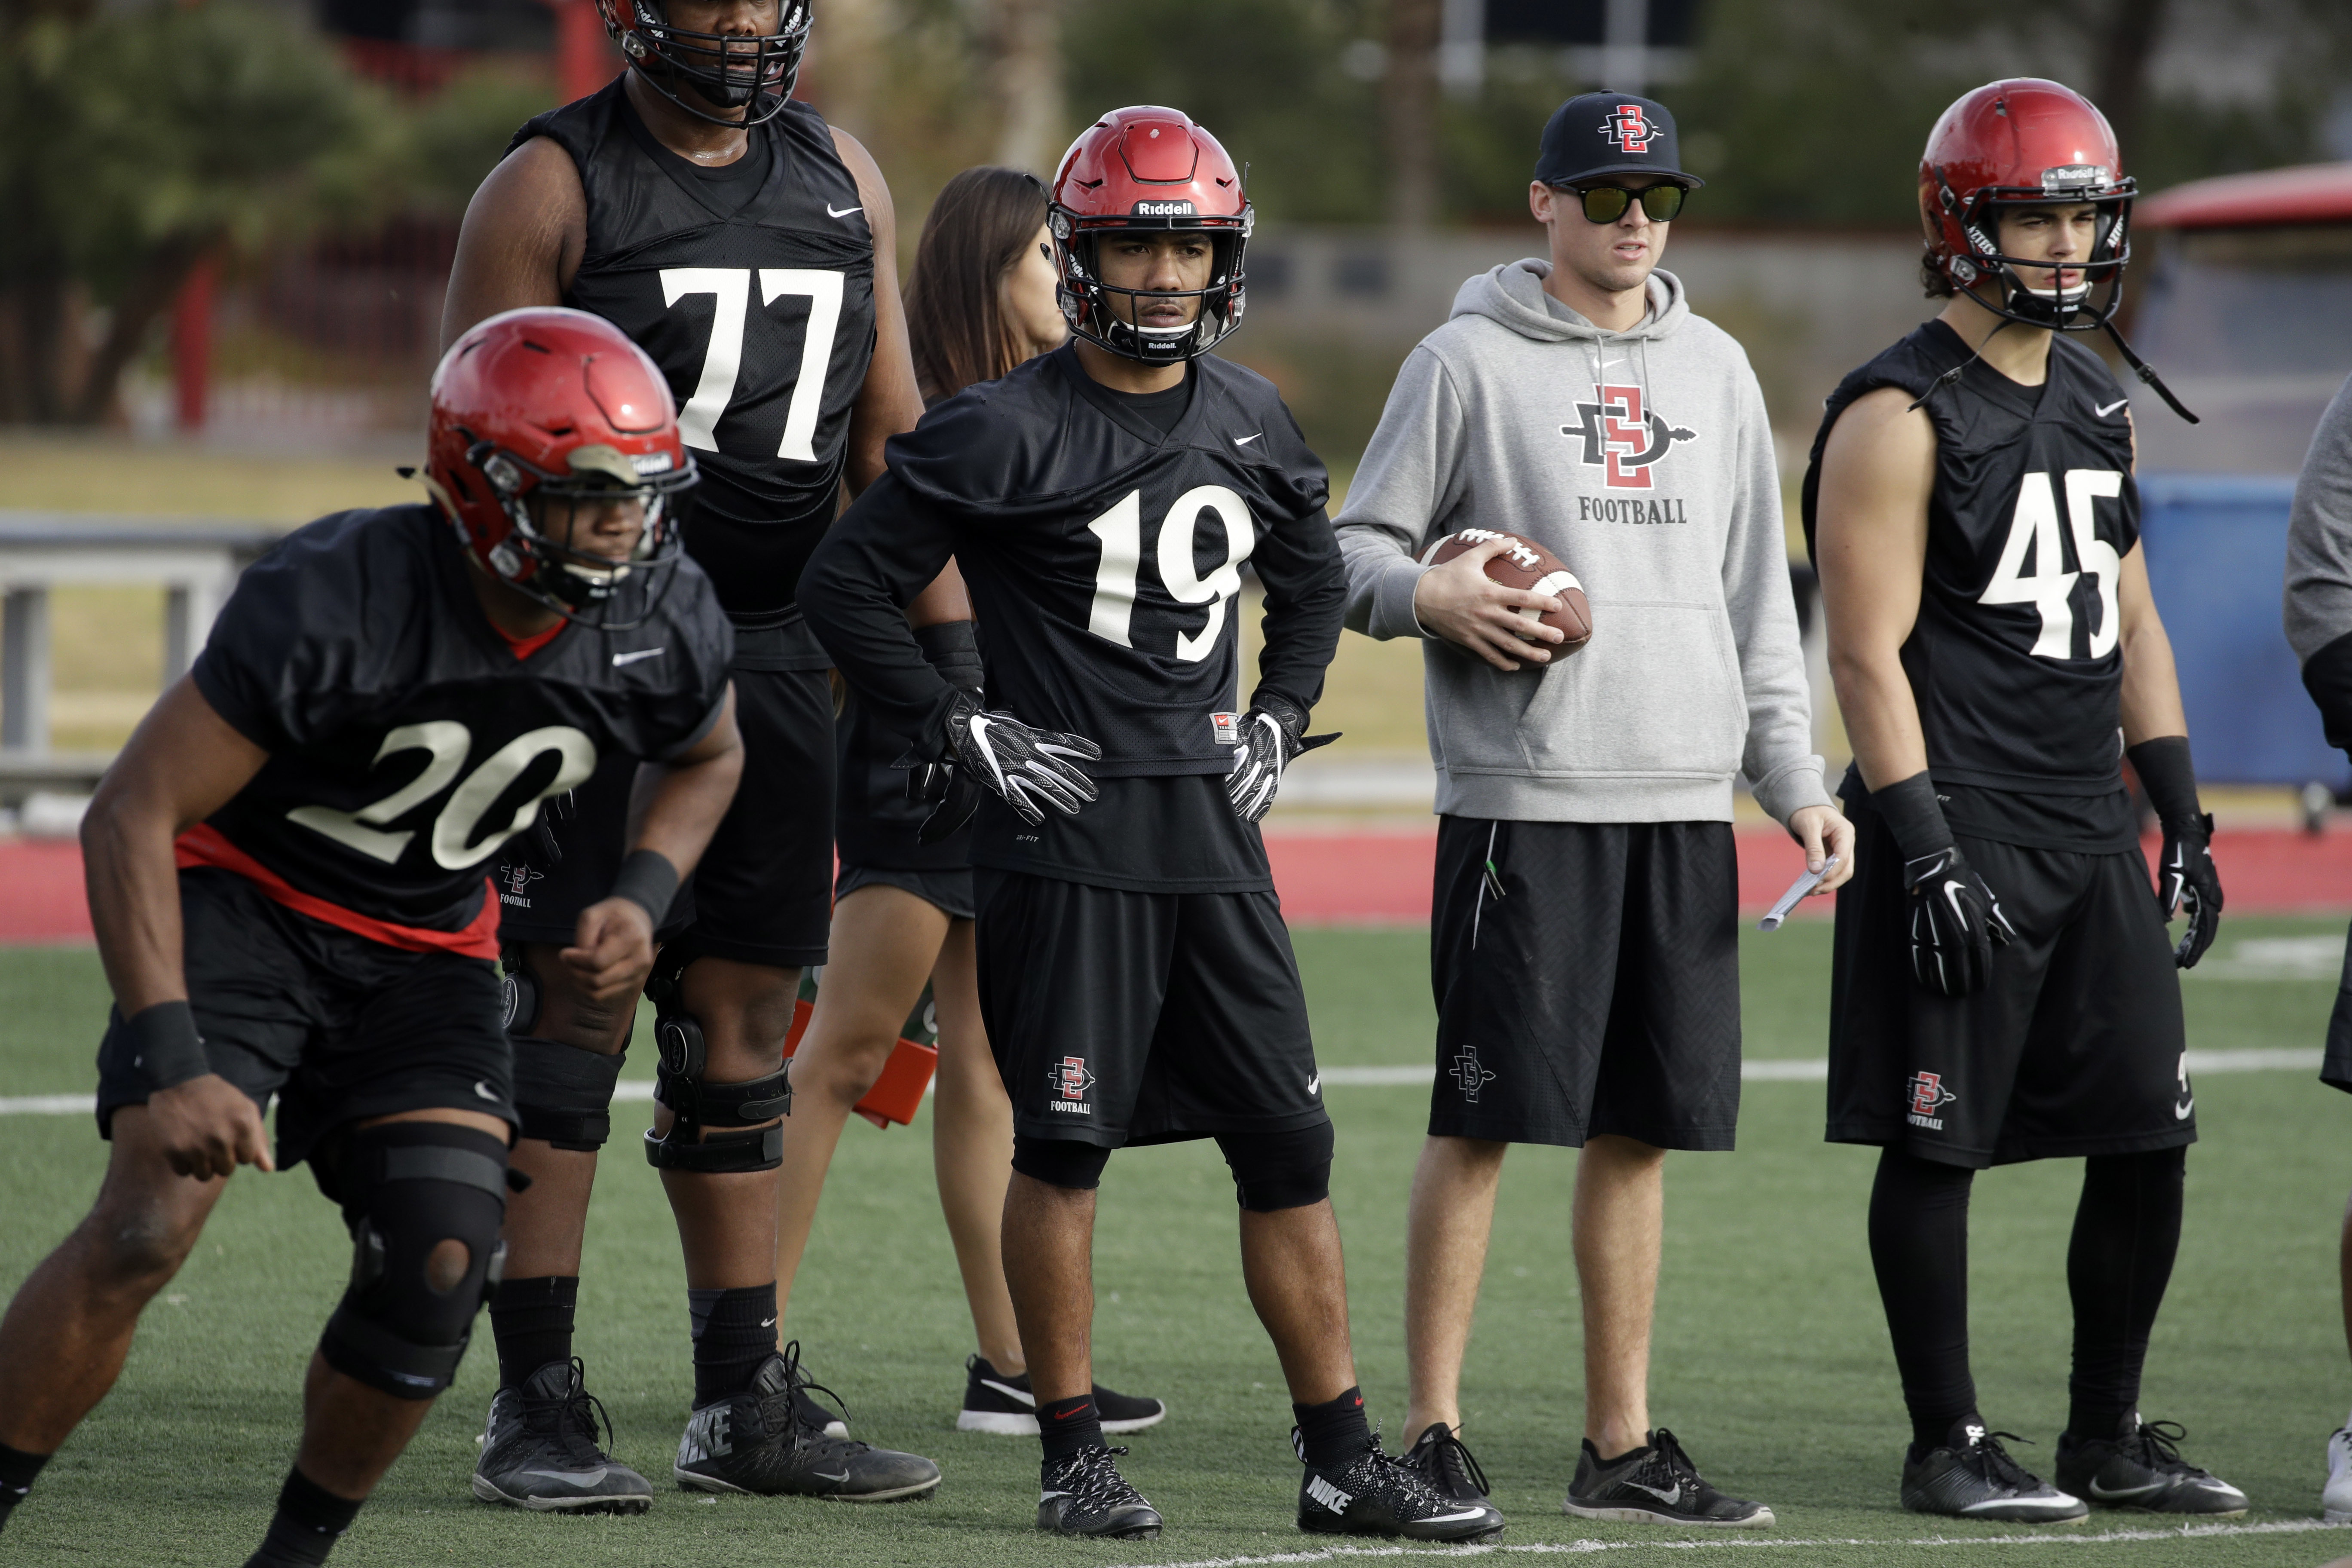 San Diego State's Donnel Pumphrey, center, watches practice Wednesday, Dec. 14, 2016, in Las Vegas. San Diego State is scheduled to play Houston Saturday in the Las Vegas Bowl. (AP Photo/John Locher)